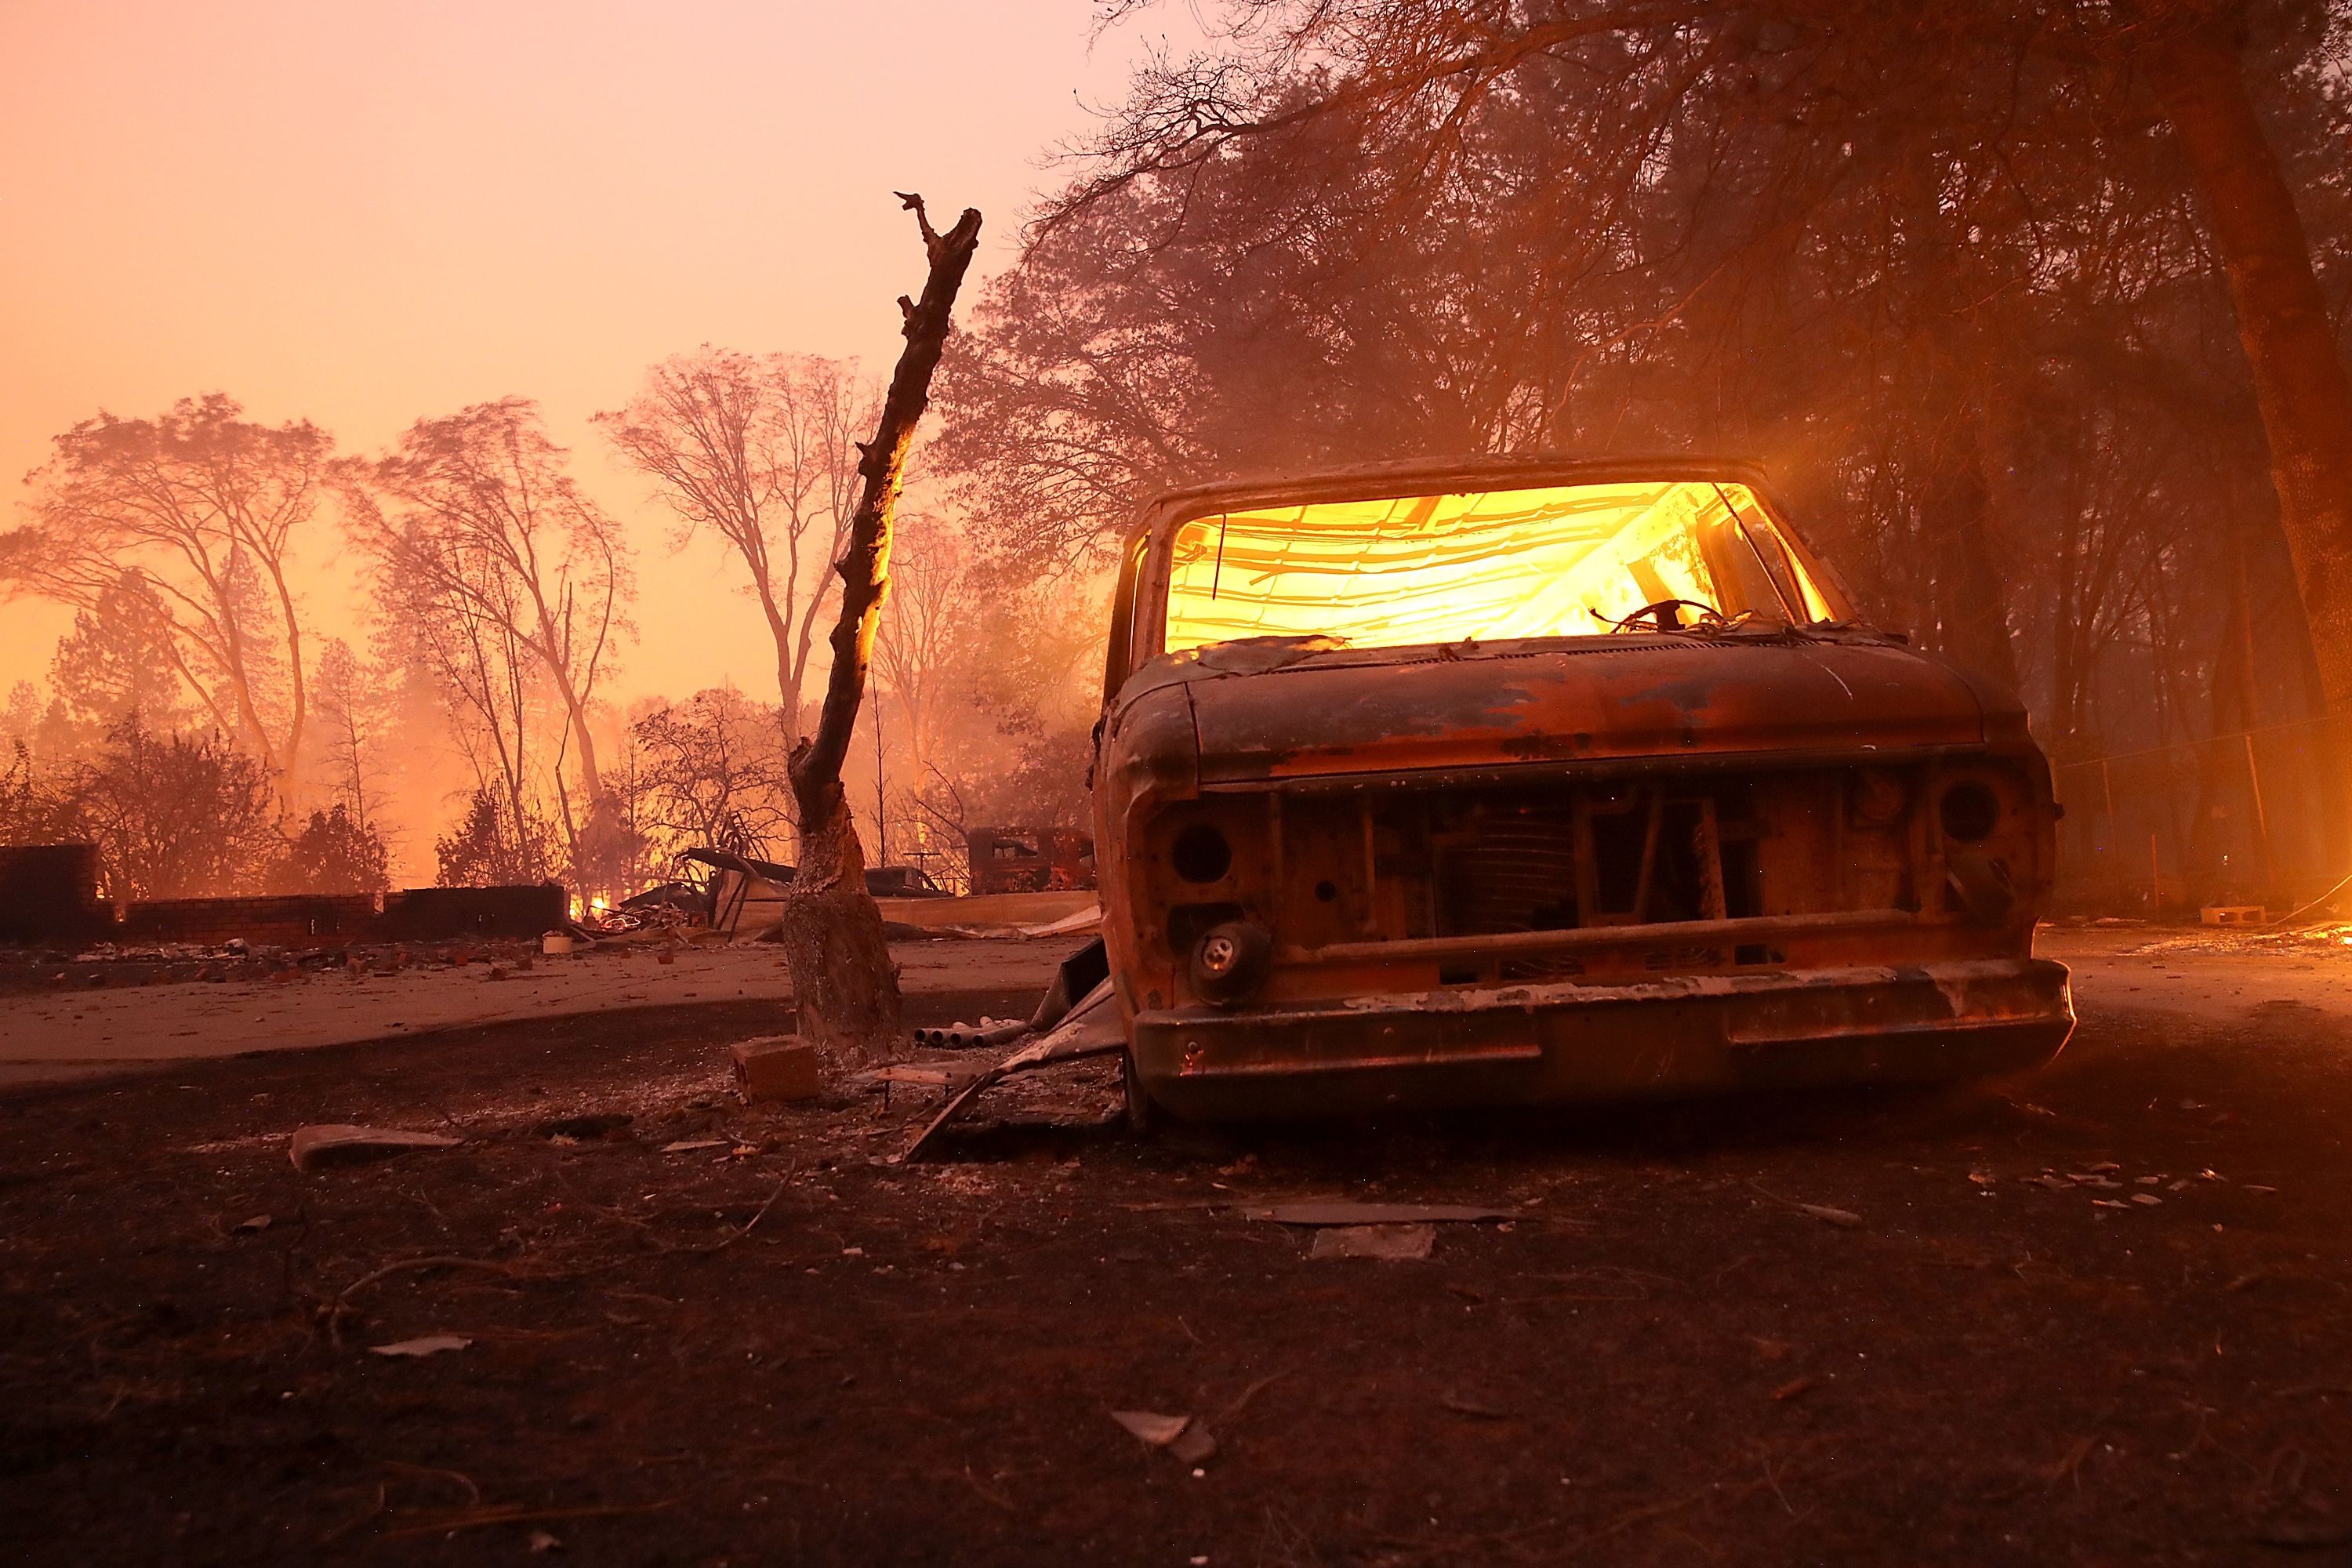 A burned out car on torched ground.